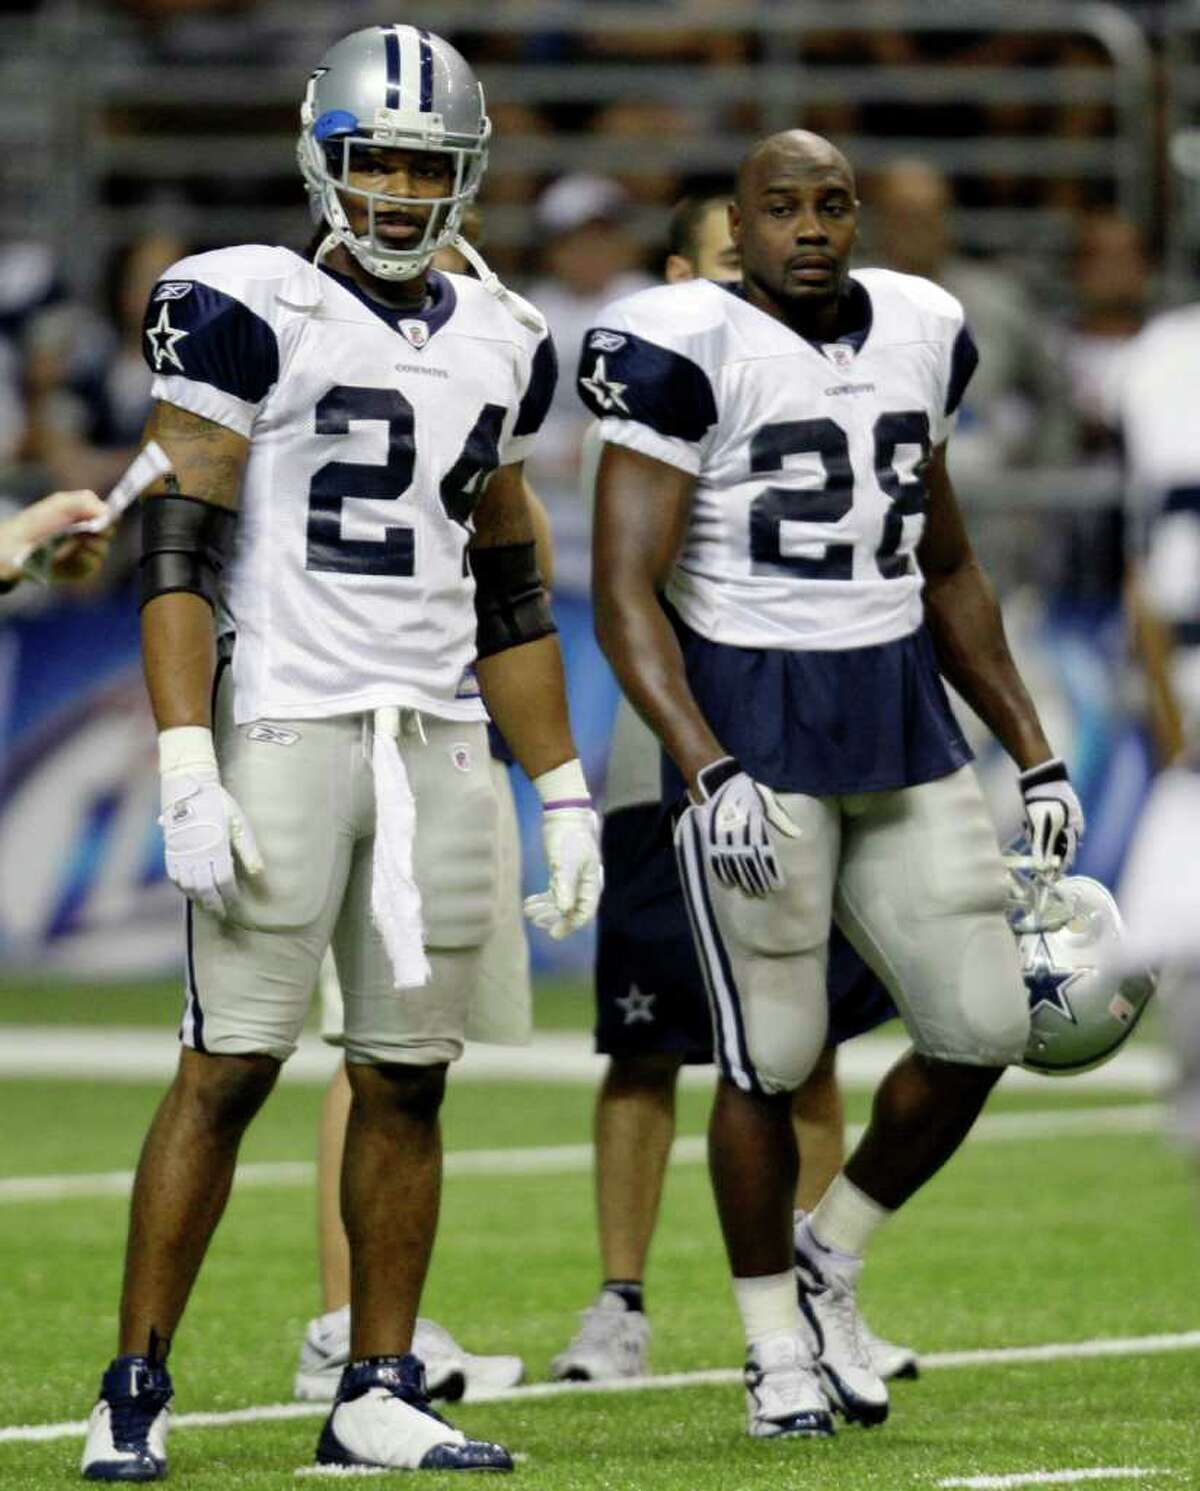 Dallas Cowboys running backs Marion Barber (24) and Felix Jones (28) attend the team's NFL football training camp in San Antonio, Friday, Aug. 7, 2009.